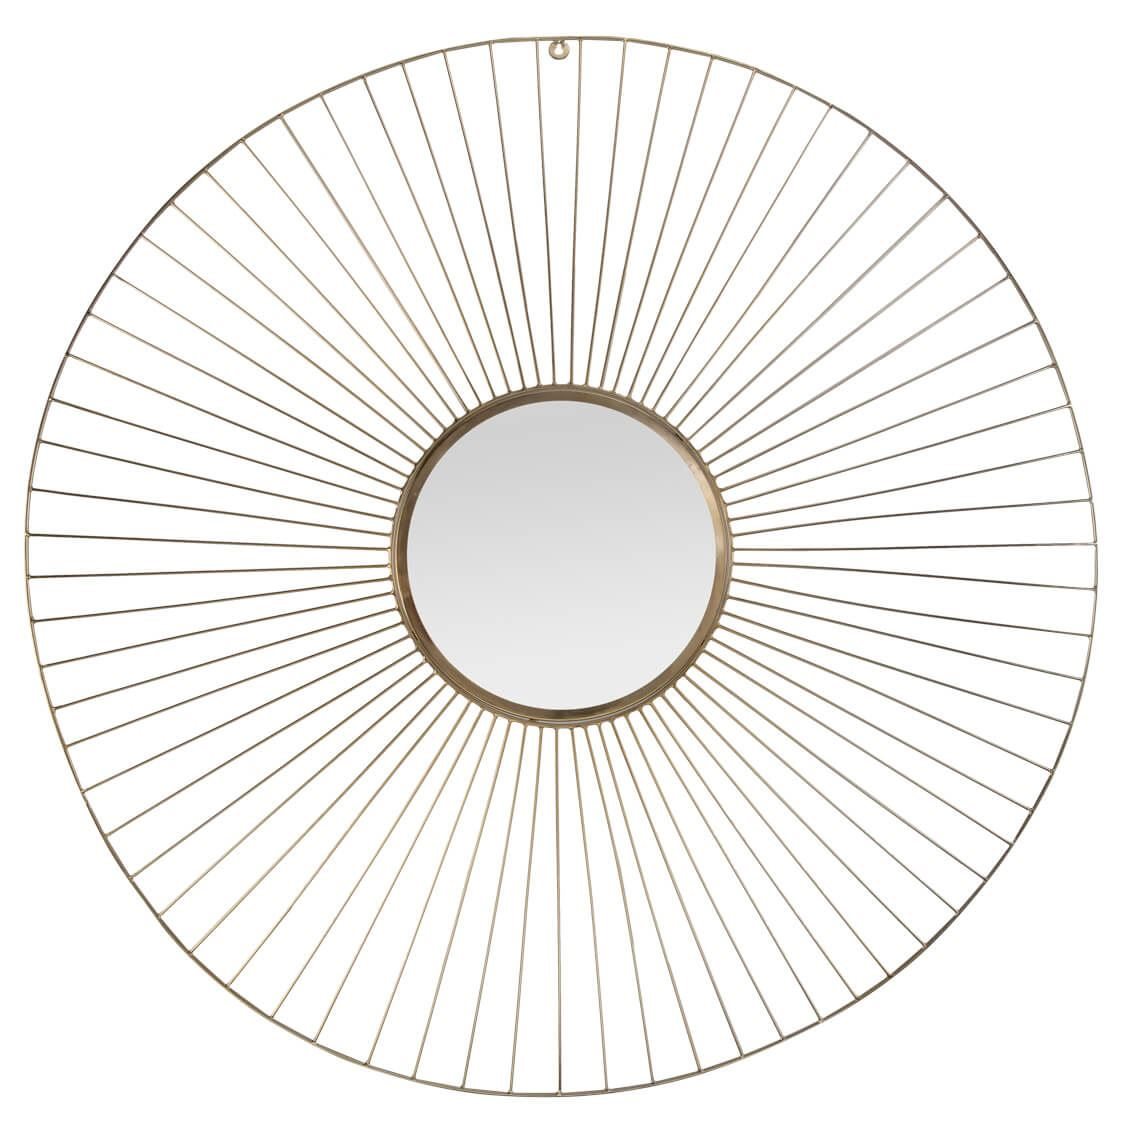 Armier Mirror Colour Size W 100cm x D 100cm x H 3cm in Gold Freedom by Freedom, a Mirrors for sale on Style Sourcebook